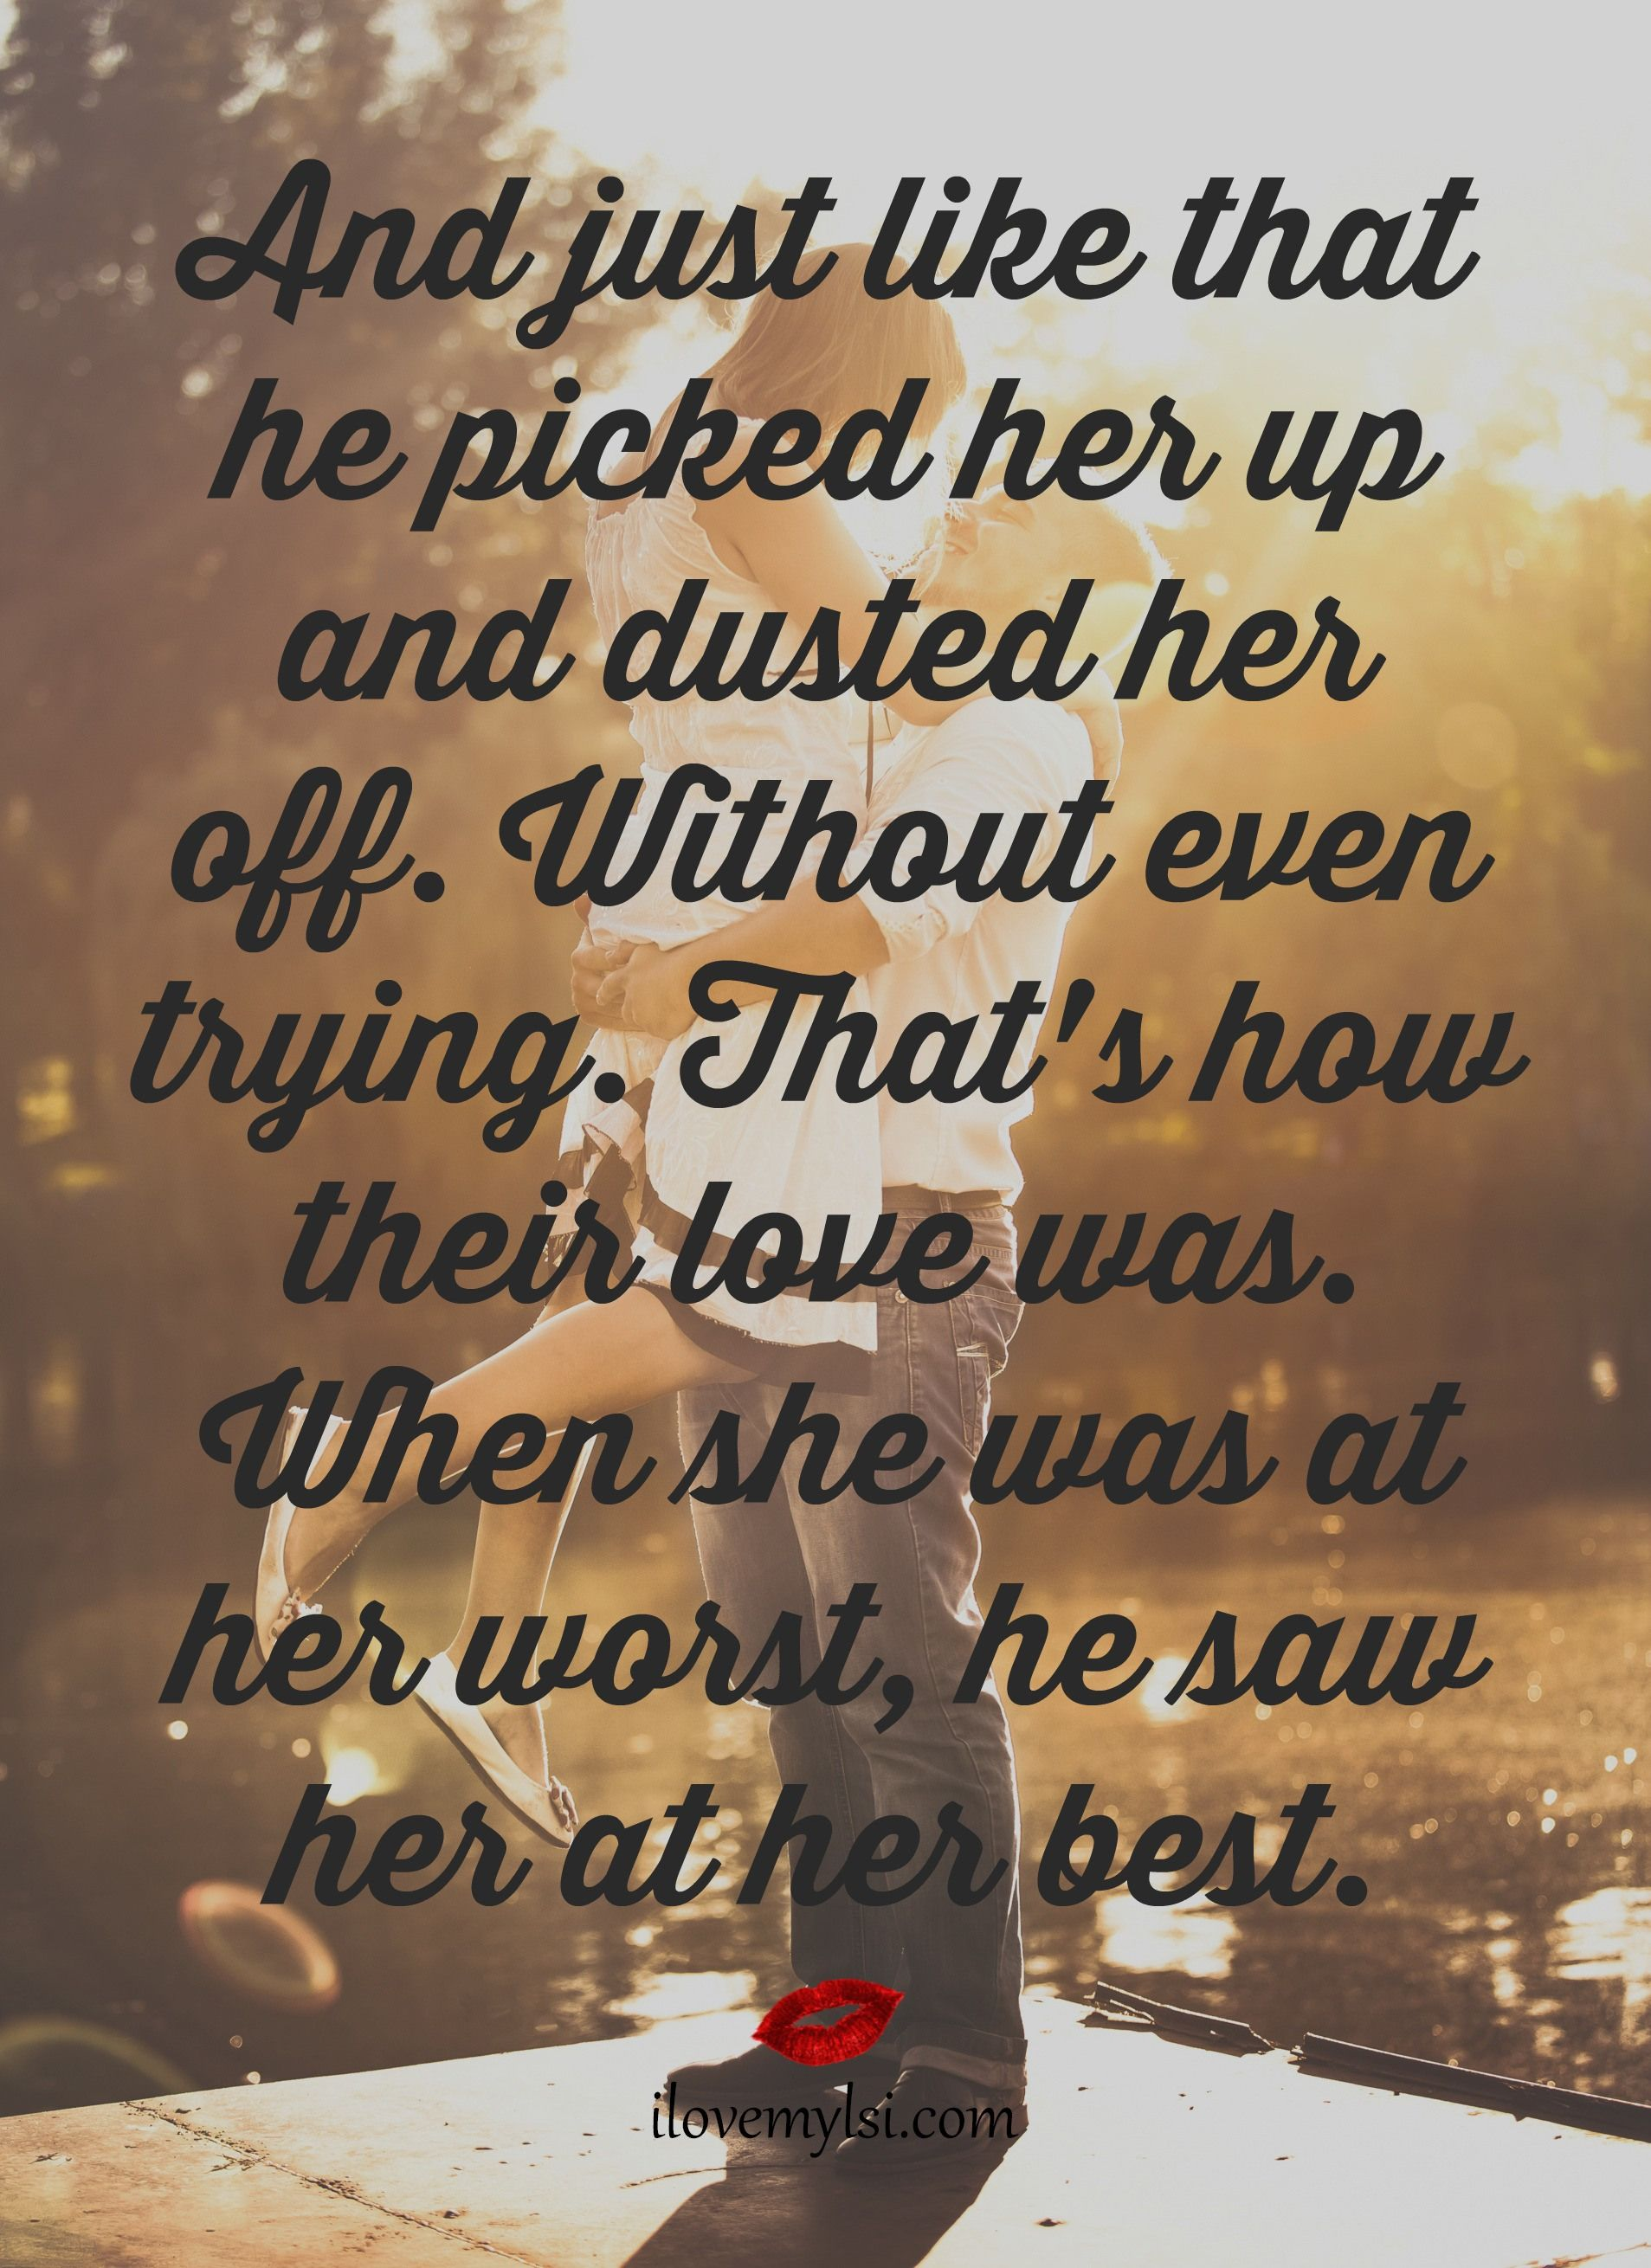 When she was at her worst he saw her at her best | Quotes <3